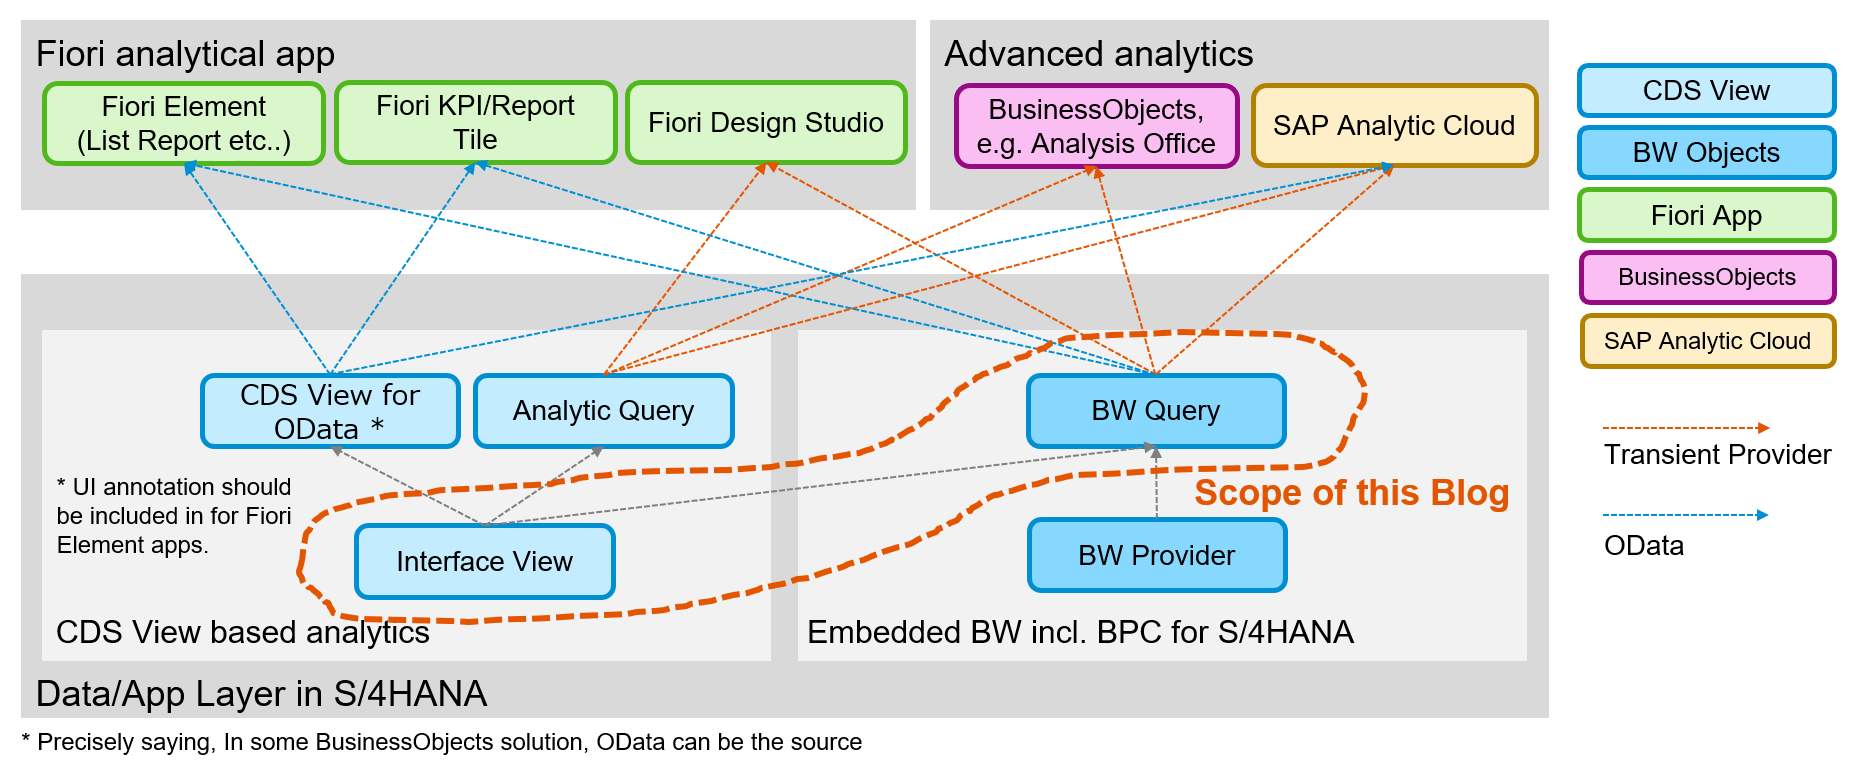 hight resolution of bw query has already been used in bpc for s 4hana and embedded bw in s 4hana there are some predefined fiori apps using bw query e g cost centers